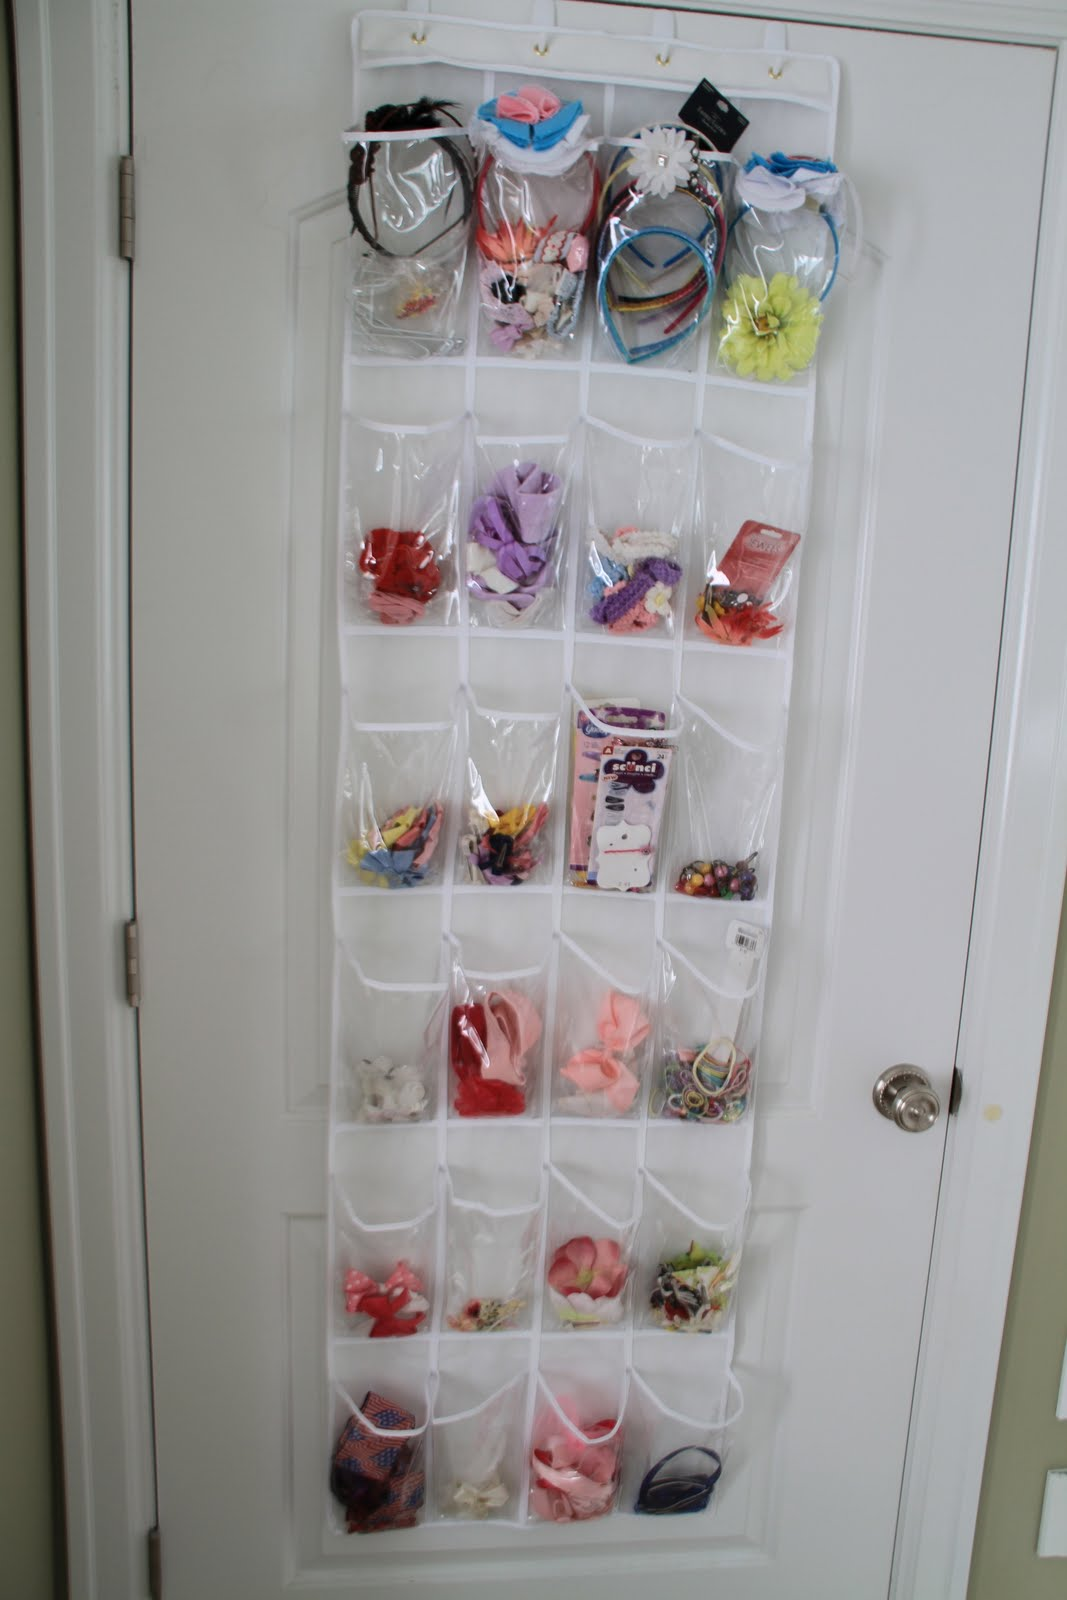 How to organize hair bows - I Tried To Find A Way To Organize My Girls Hair Bows Elastics Head Bands Etc I Wasn T Ever Able To Find A Solution That Worked For All Of Them Together